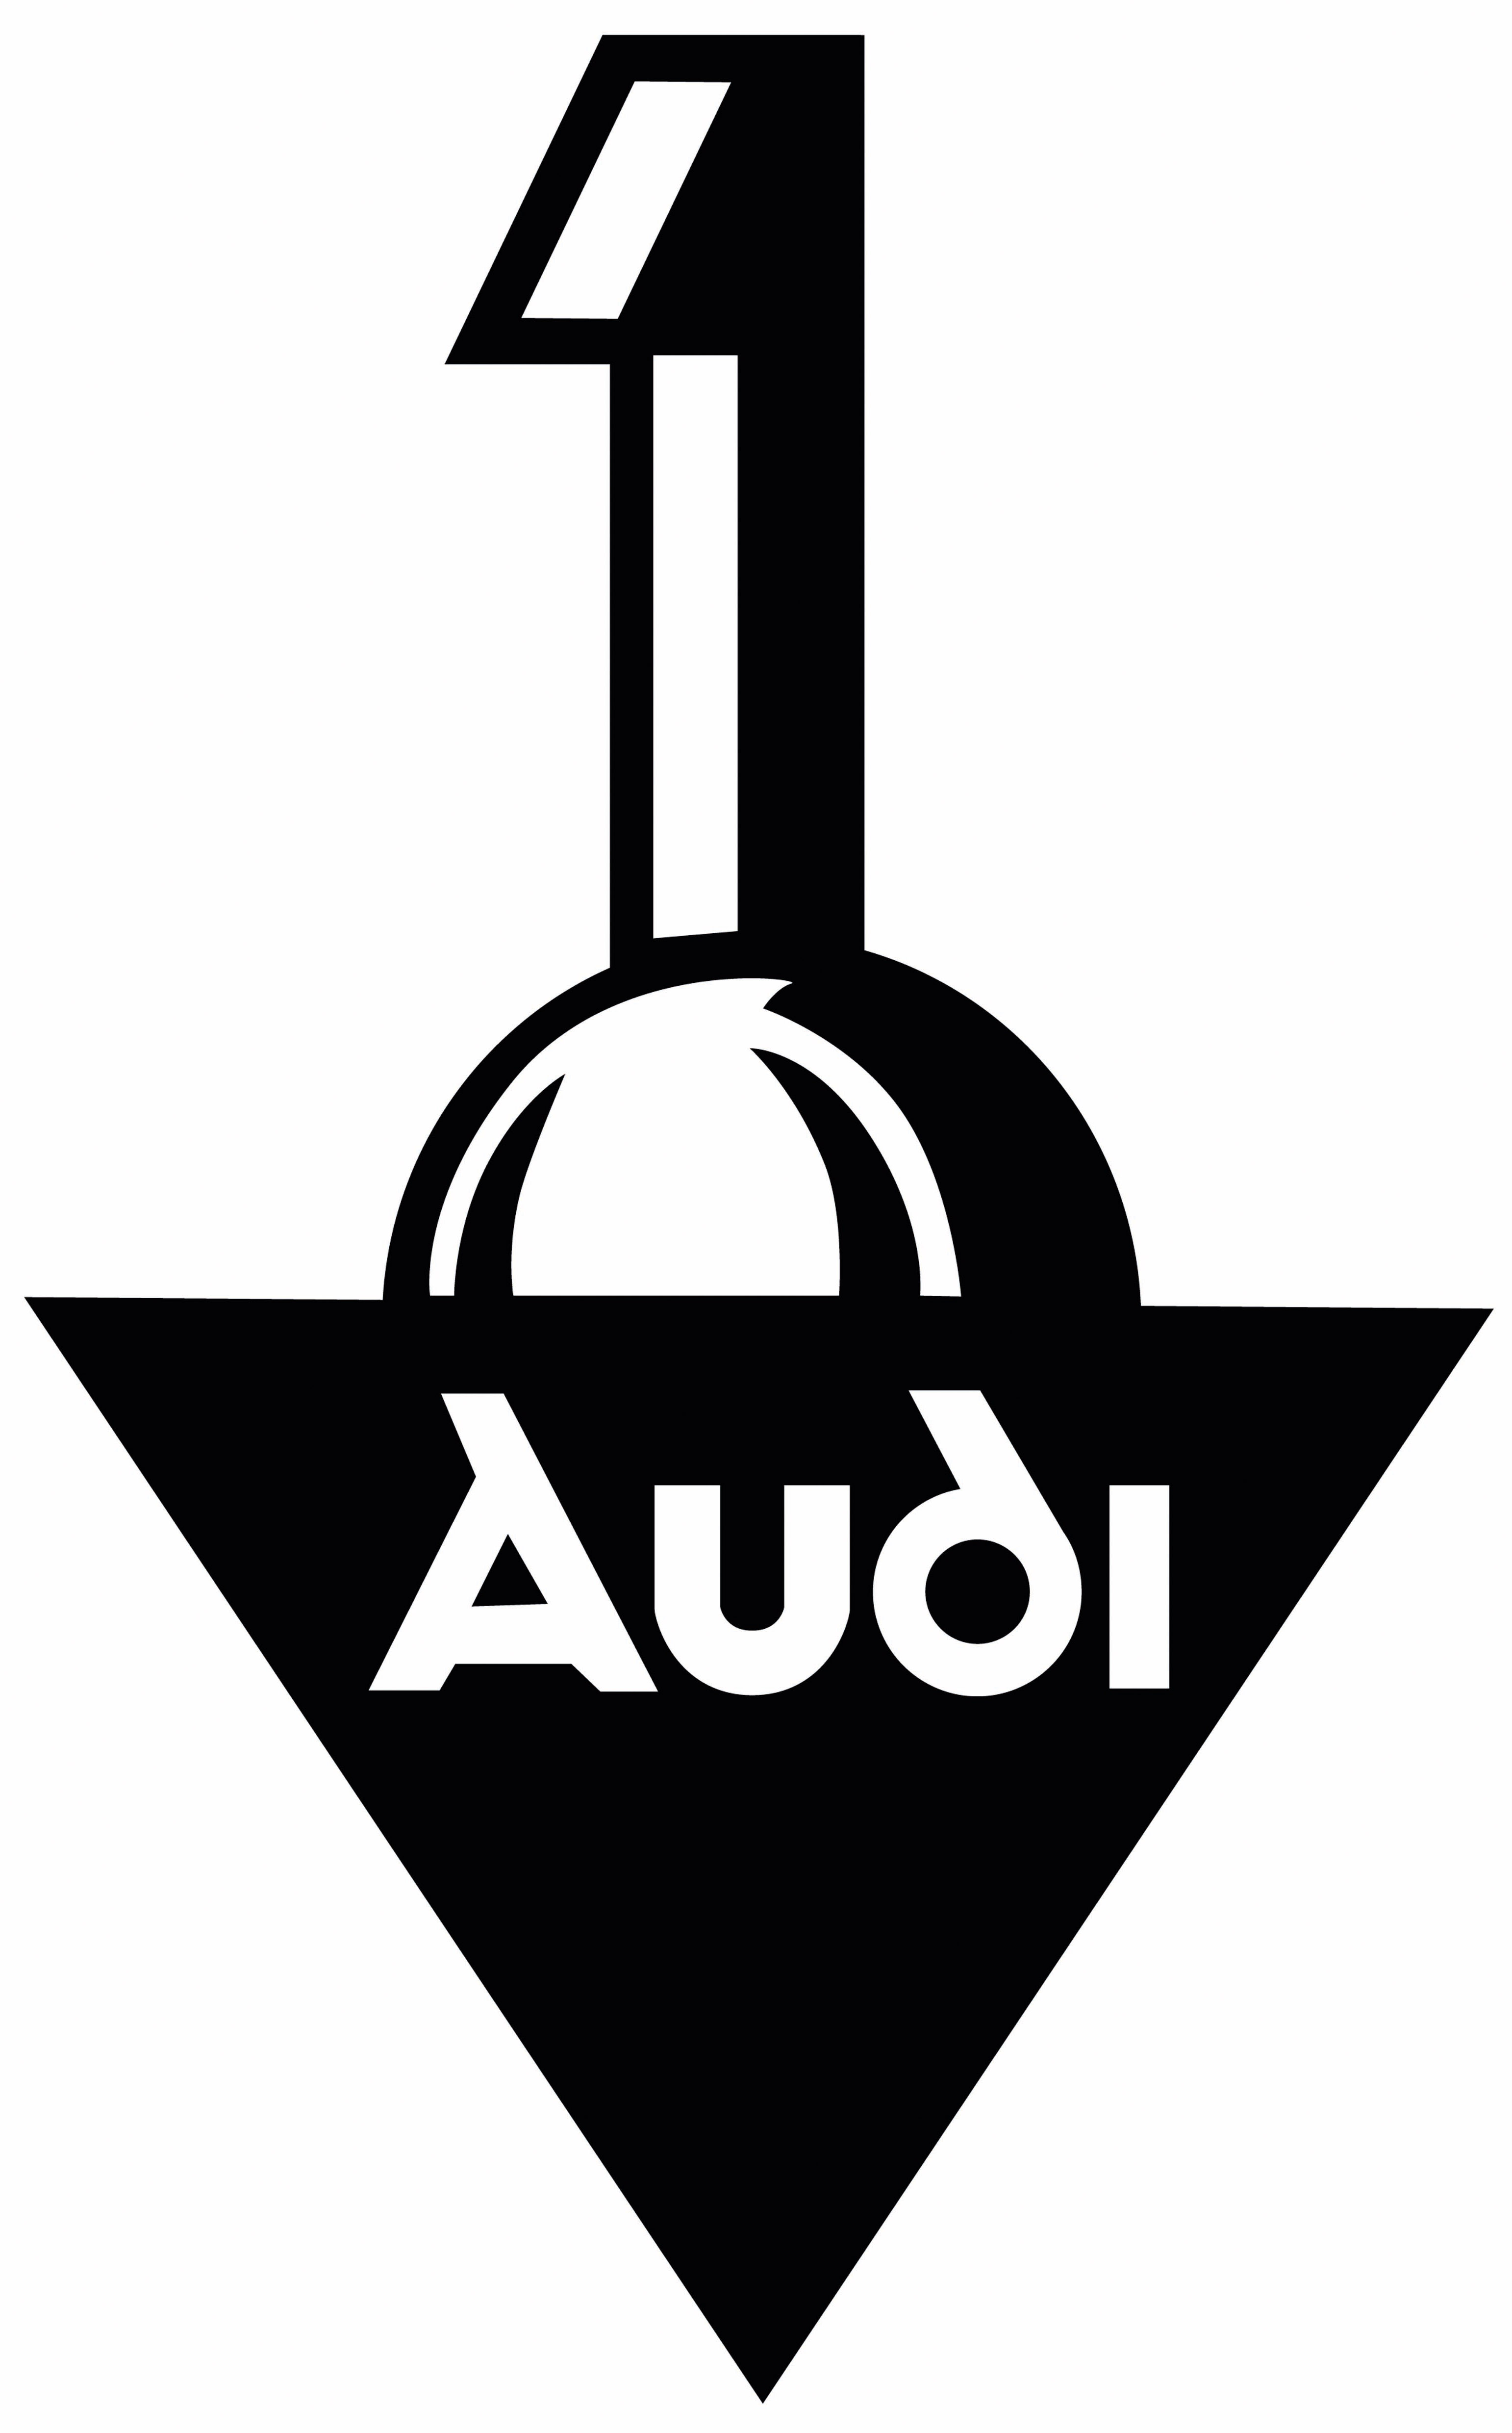 History Of The Audi Rings - Audi emblem